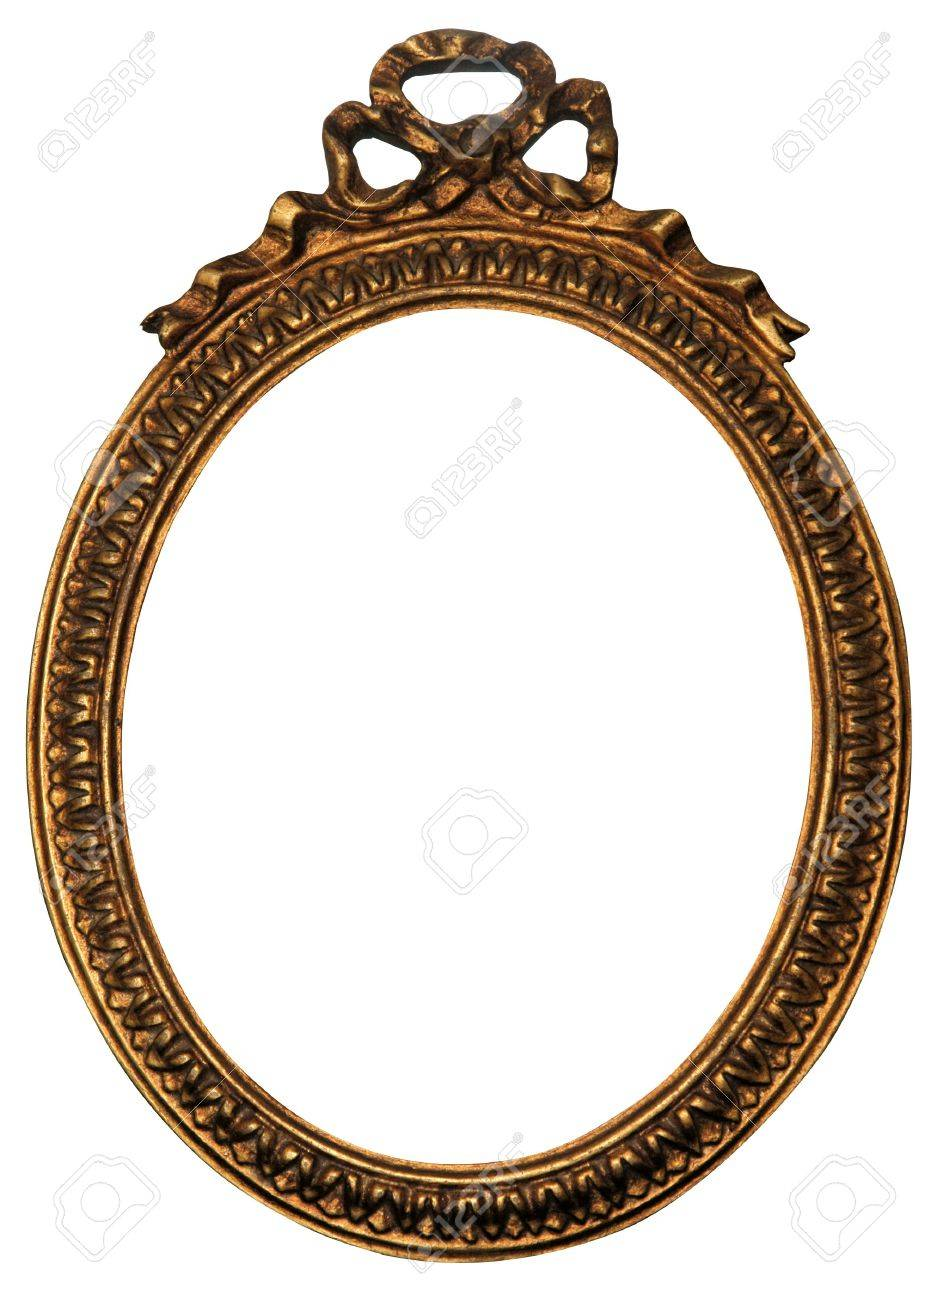 Wilko baroque mirror silver 87x62cm -  Baroque Gold Mirror Picture Frame With Ornaments To Put Your